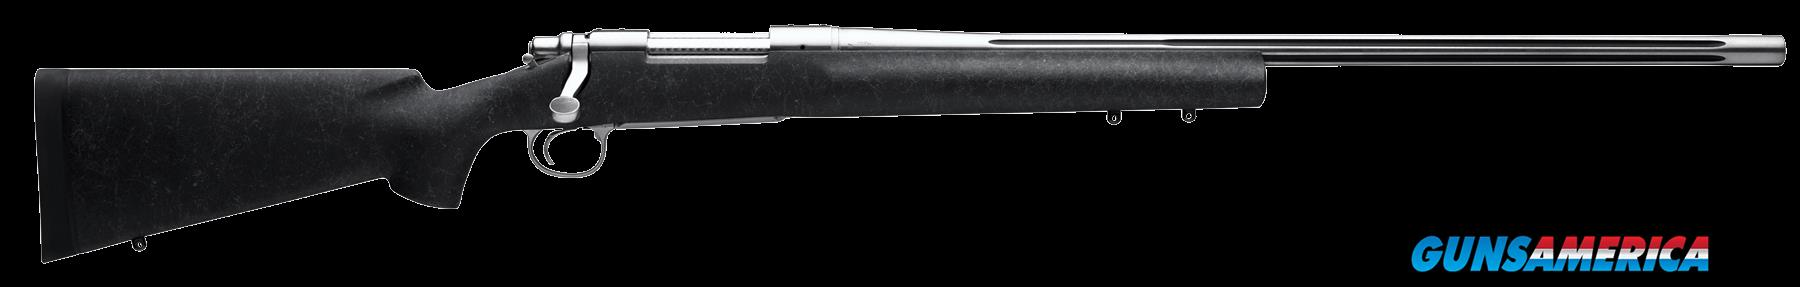 "Remington Firearms 25643 700 Sendero SF II Bolt 25-06 Rem 26"" 4+1 Synthetic Black/Gray Stk Stainless  Guns > Rifles > R Misc Rifles"